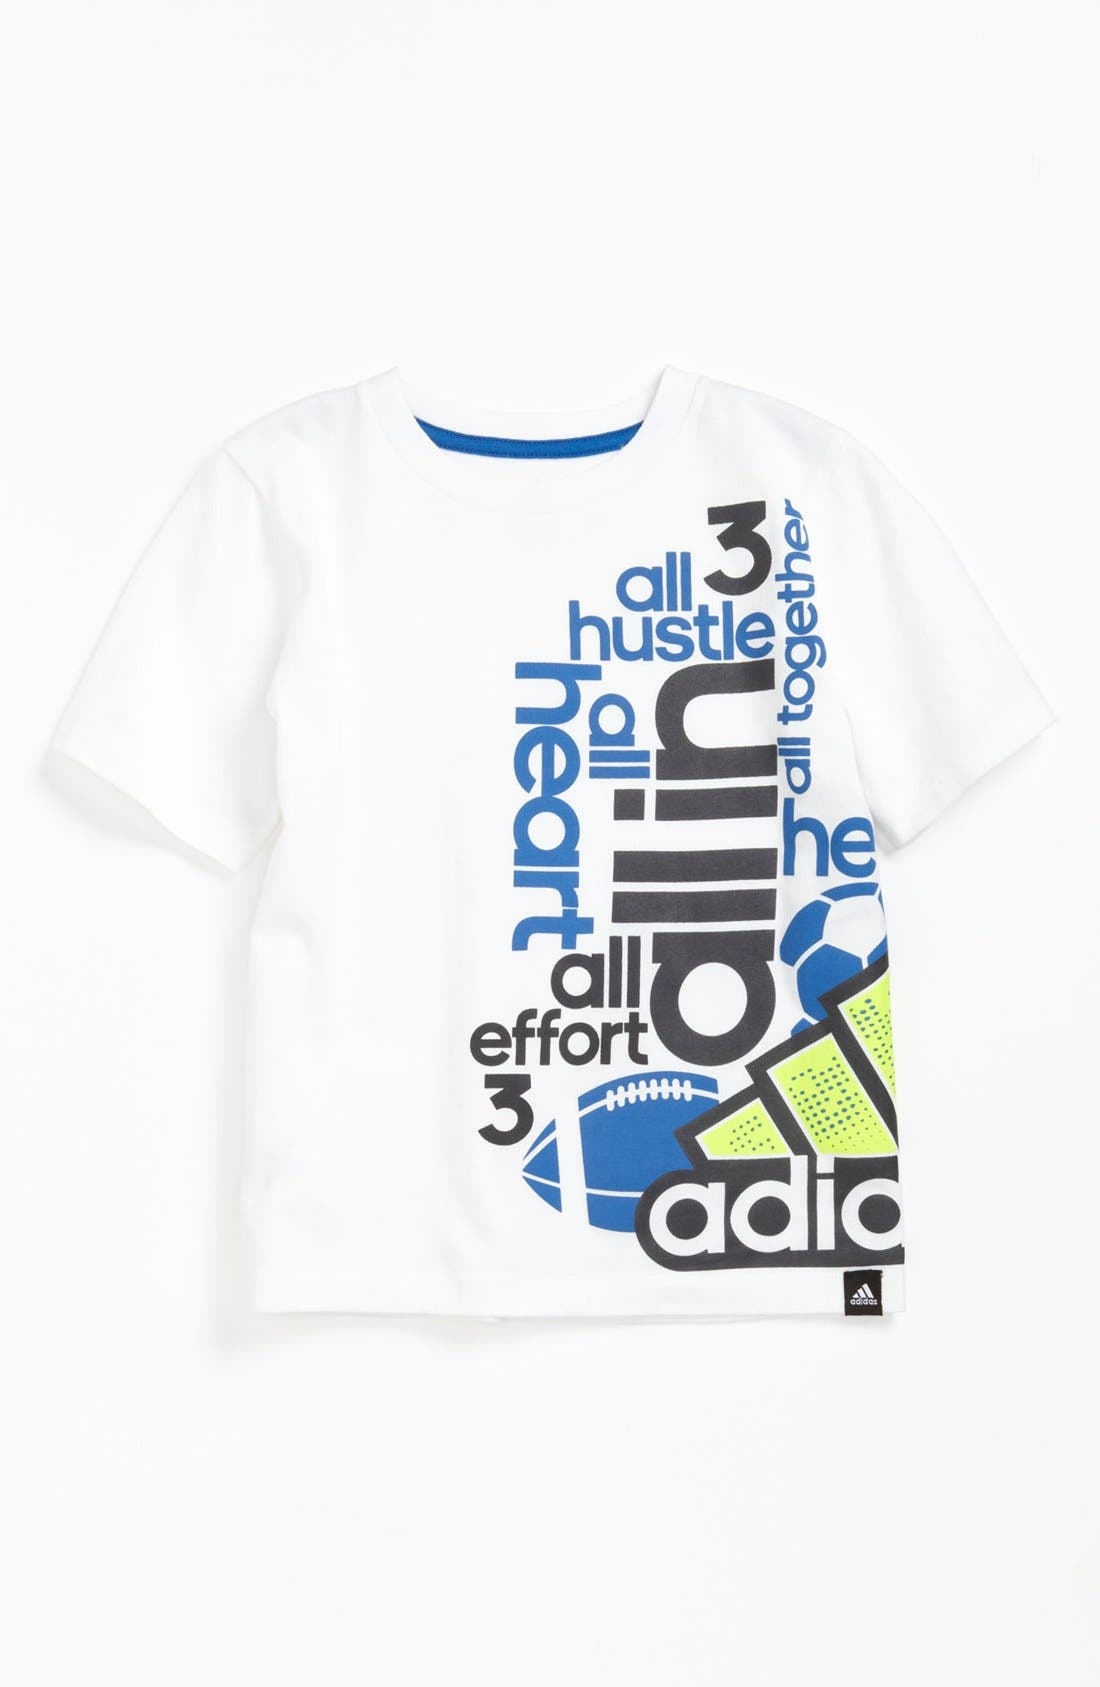 Alternate Image 1 Selected - adidas 'All In' T-Shirt (Little Boys) (Online Only)